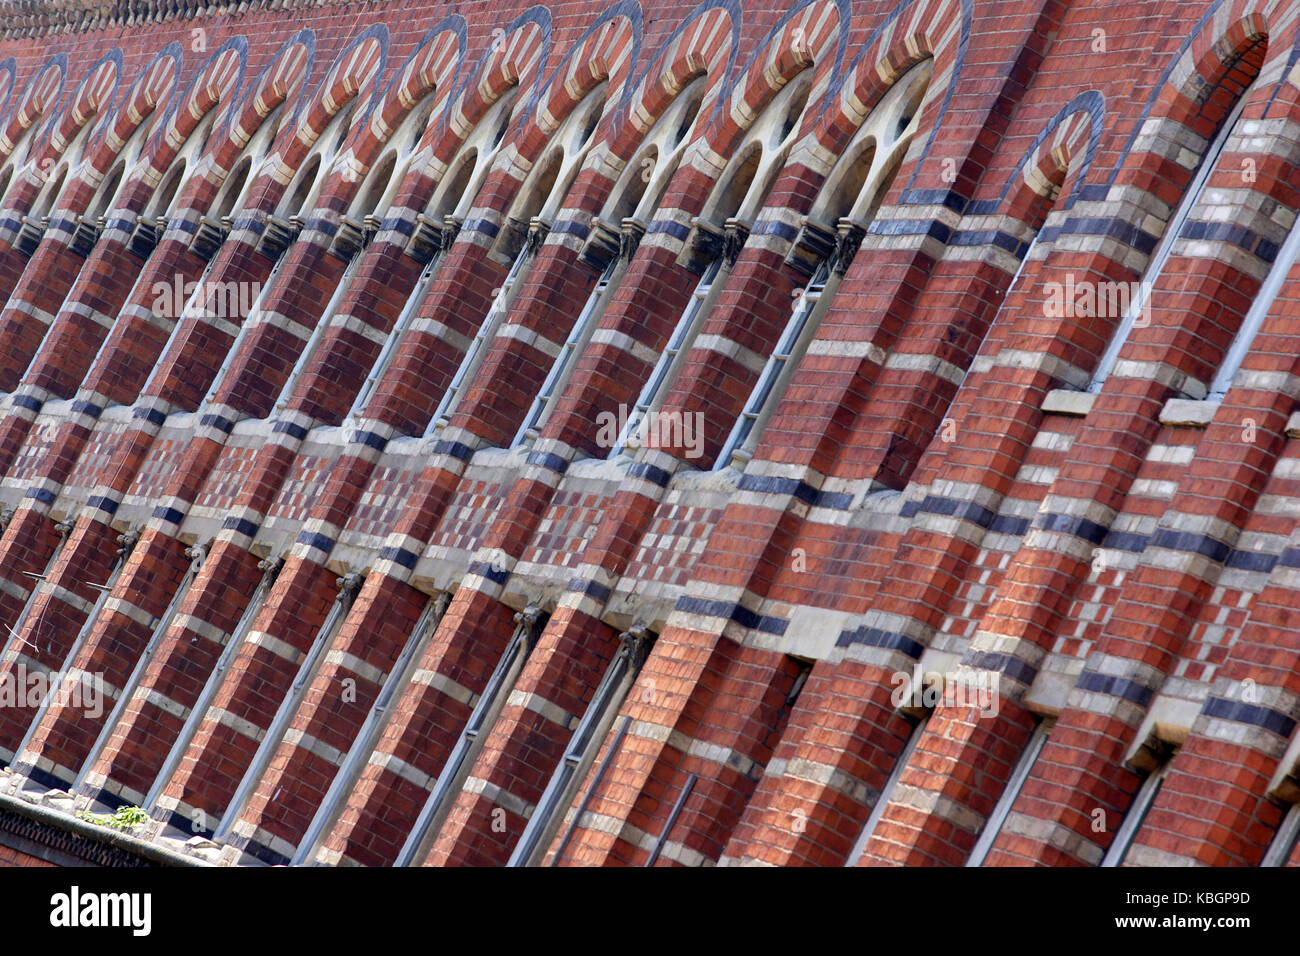 Colourful brickwork in Hockley, Birmingham. Stock Photo